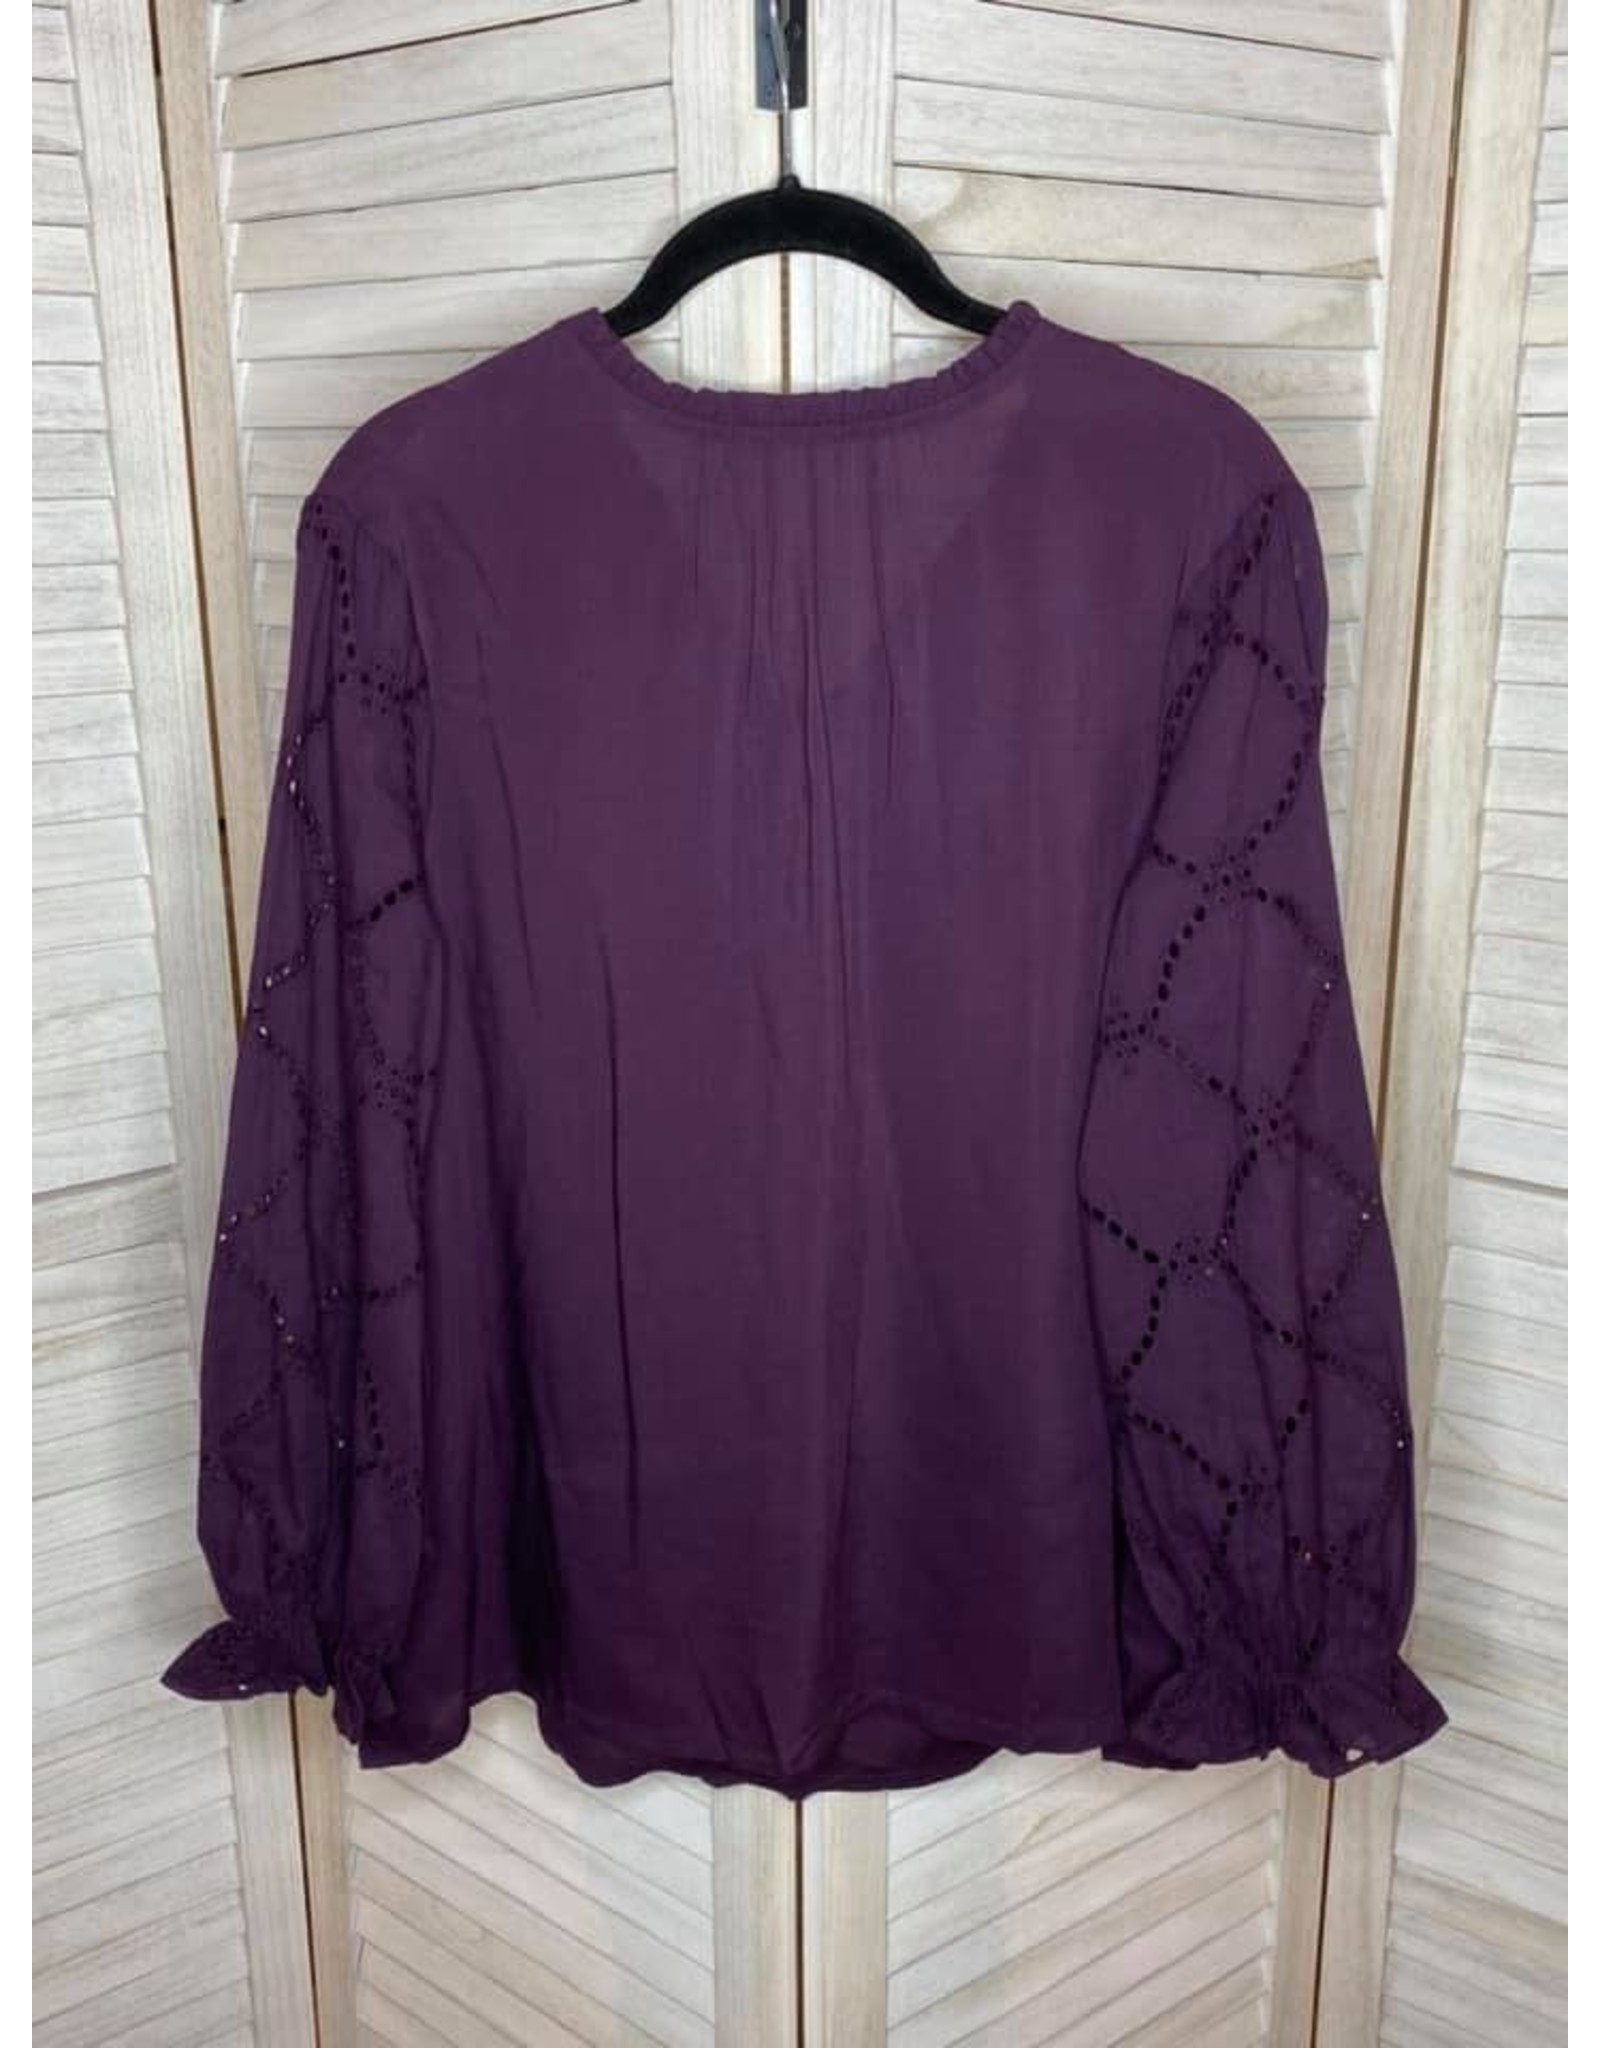 Jodifl Eggplant Top with Frilled High Neck and Long Eyelet Bubble Sleeves